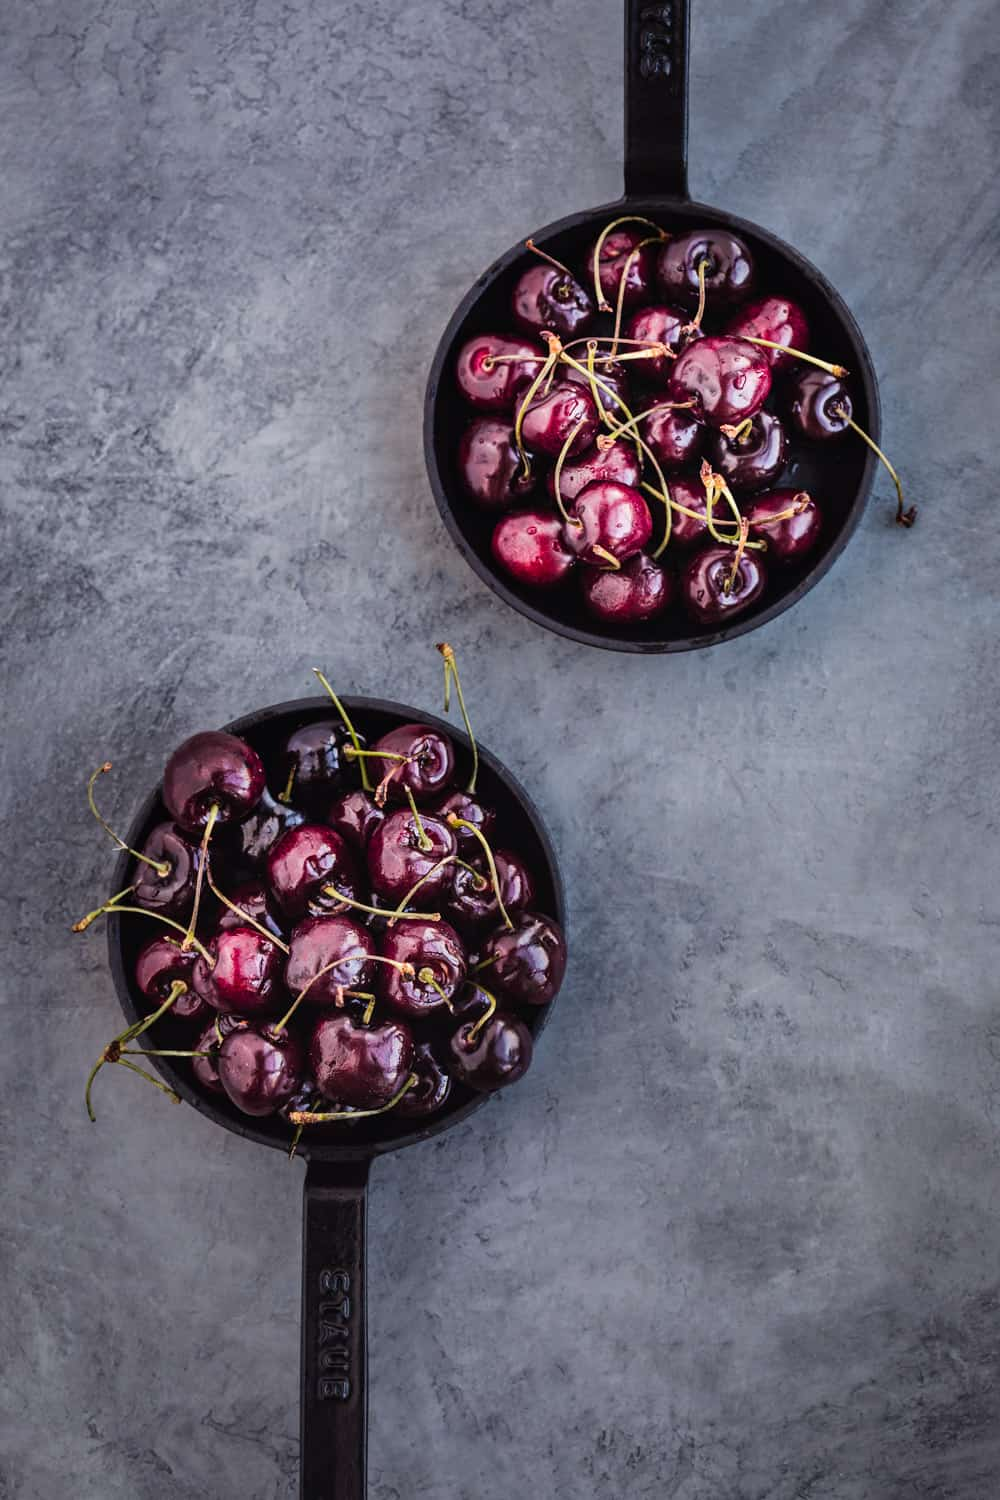 2 skillets filled with whole, raw cherries, overhead shot.